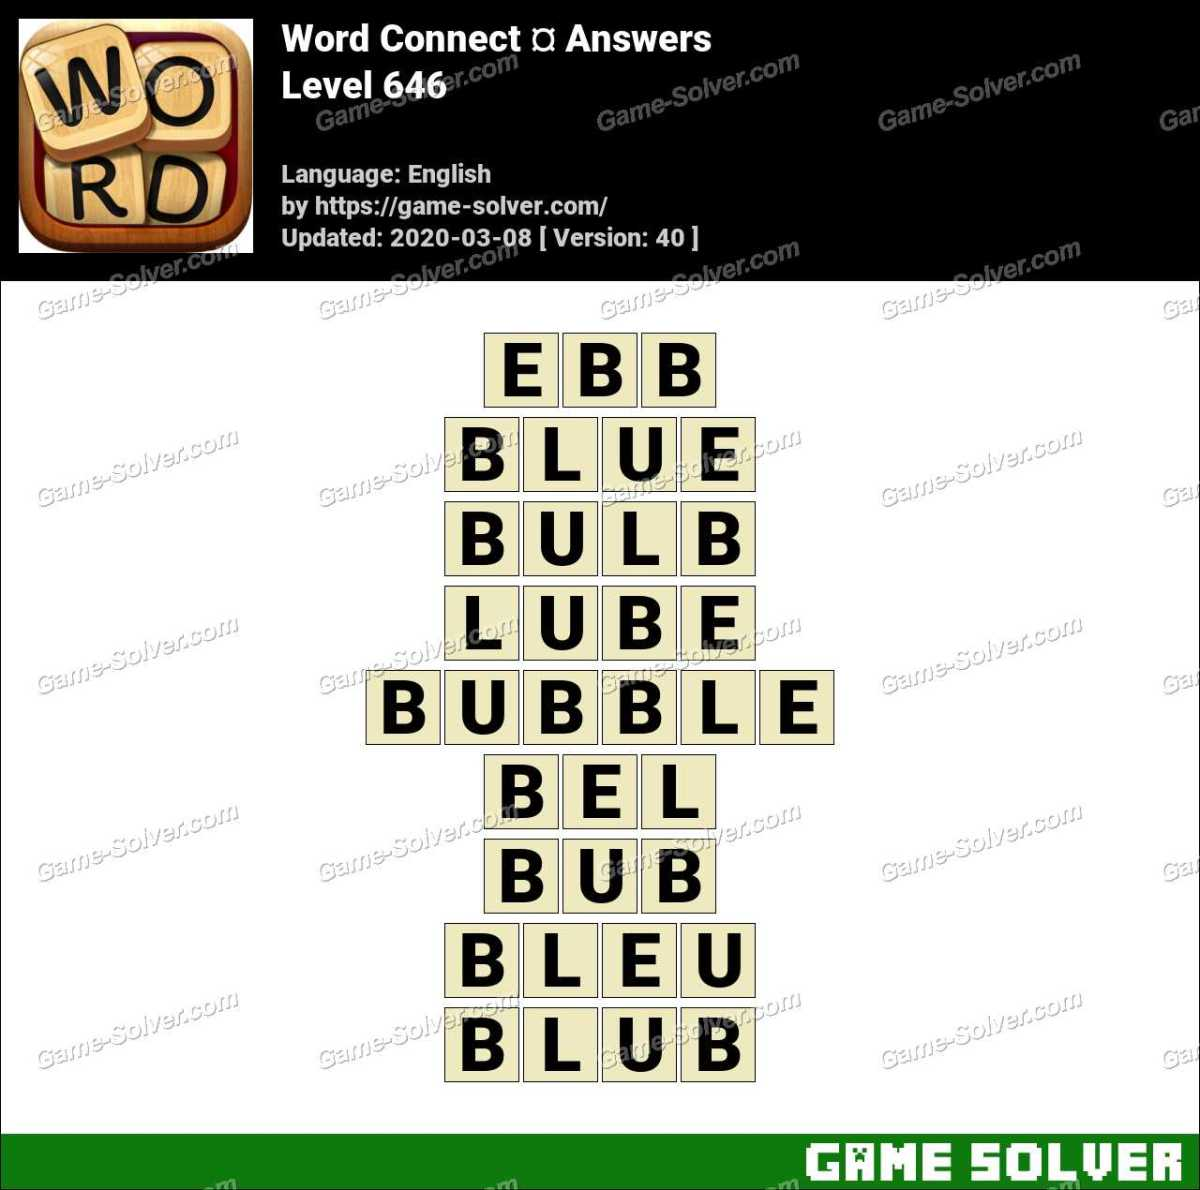 Word Connect Level 646 Answers